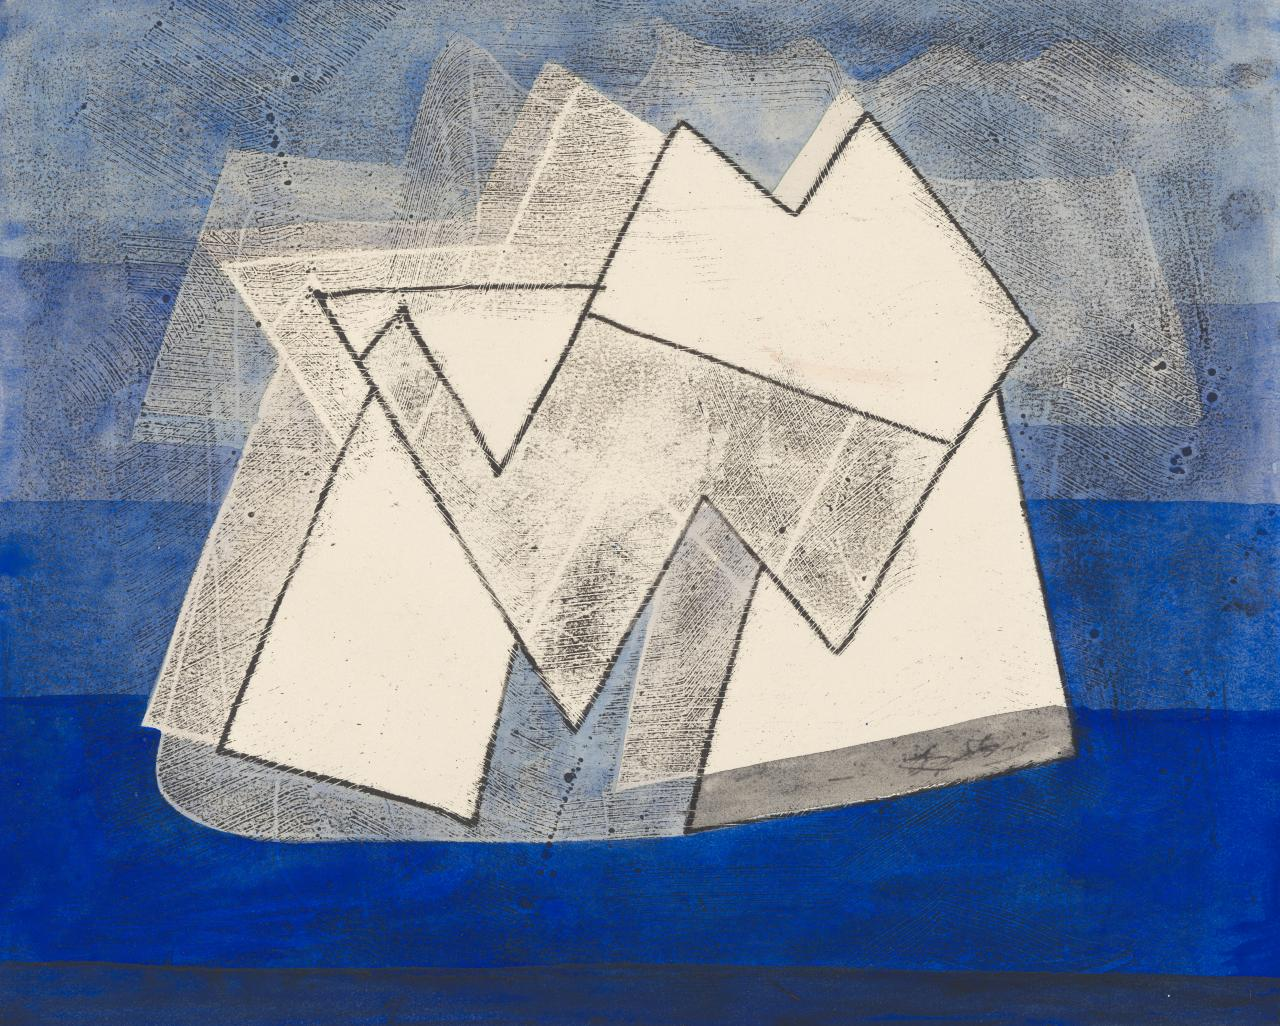 Untitled (White peaked motifs on blue ground)